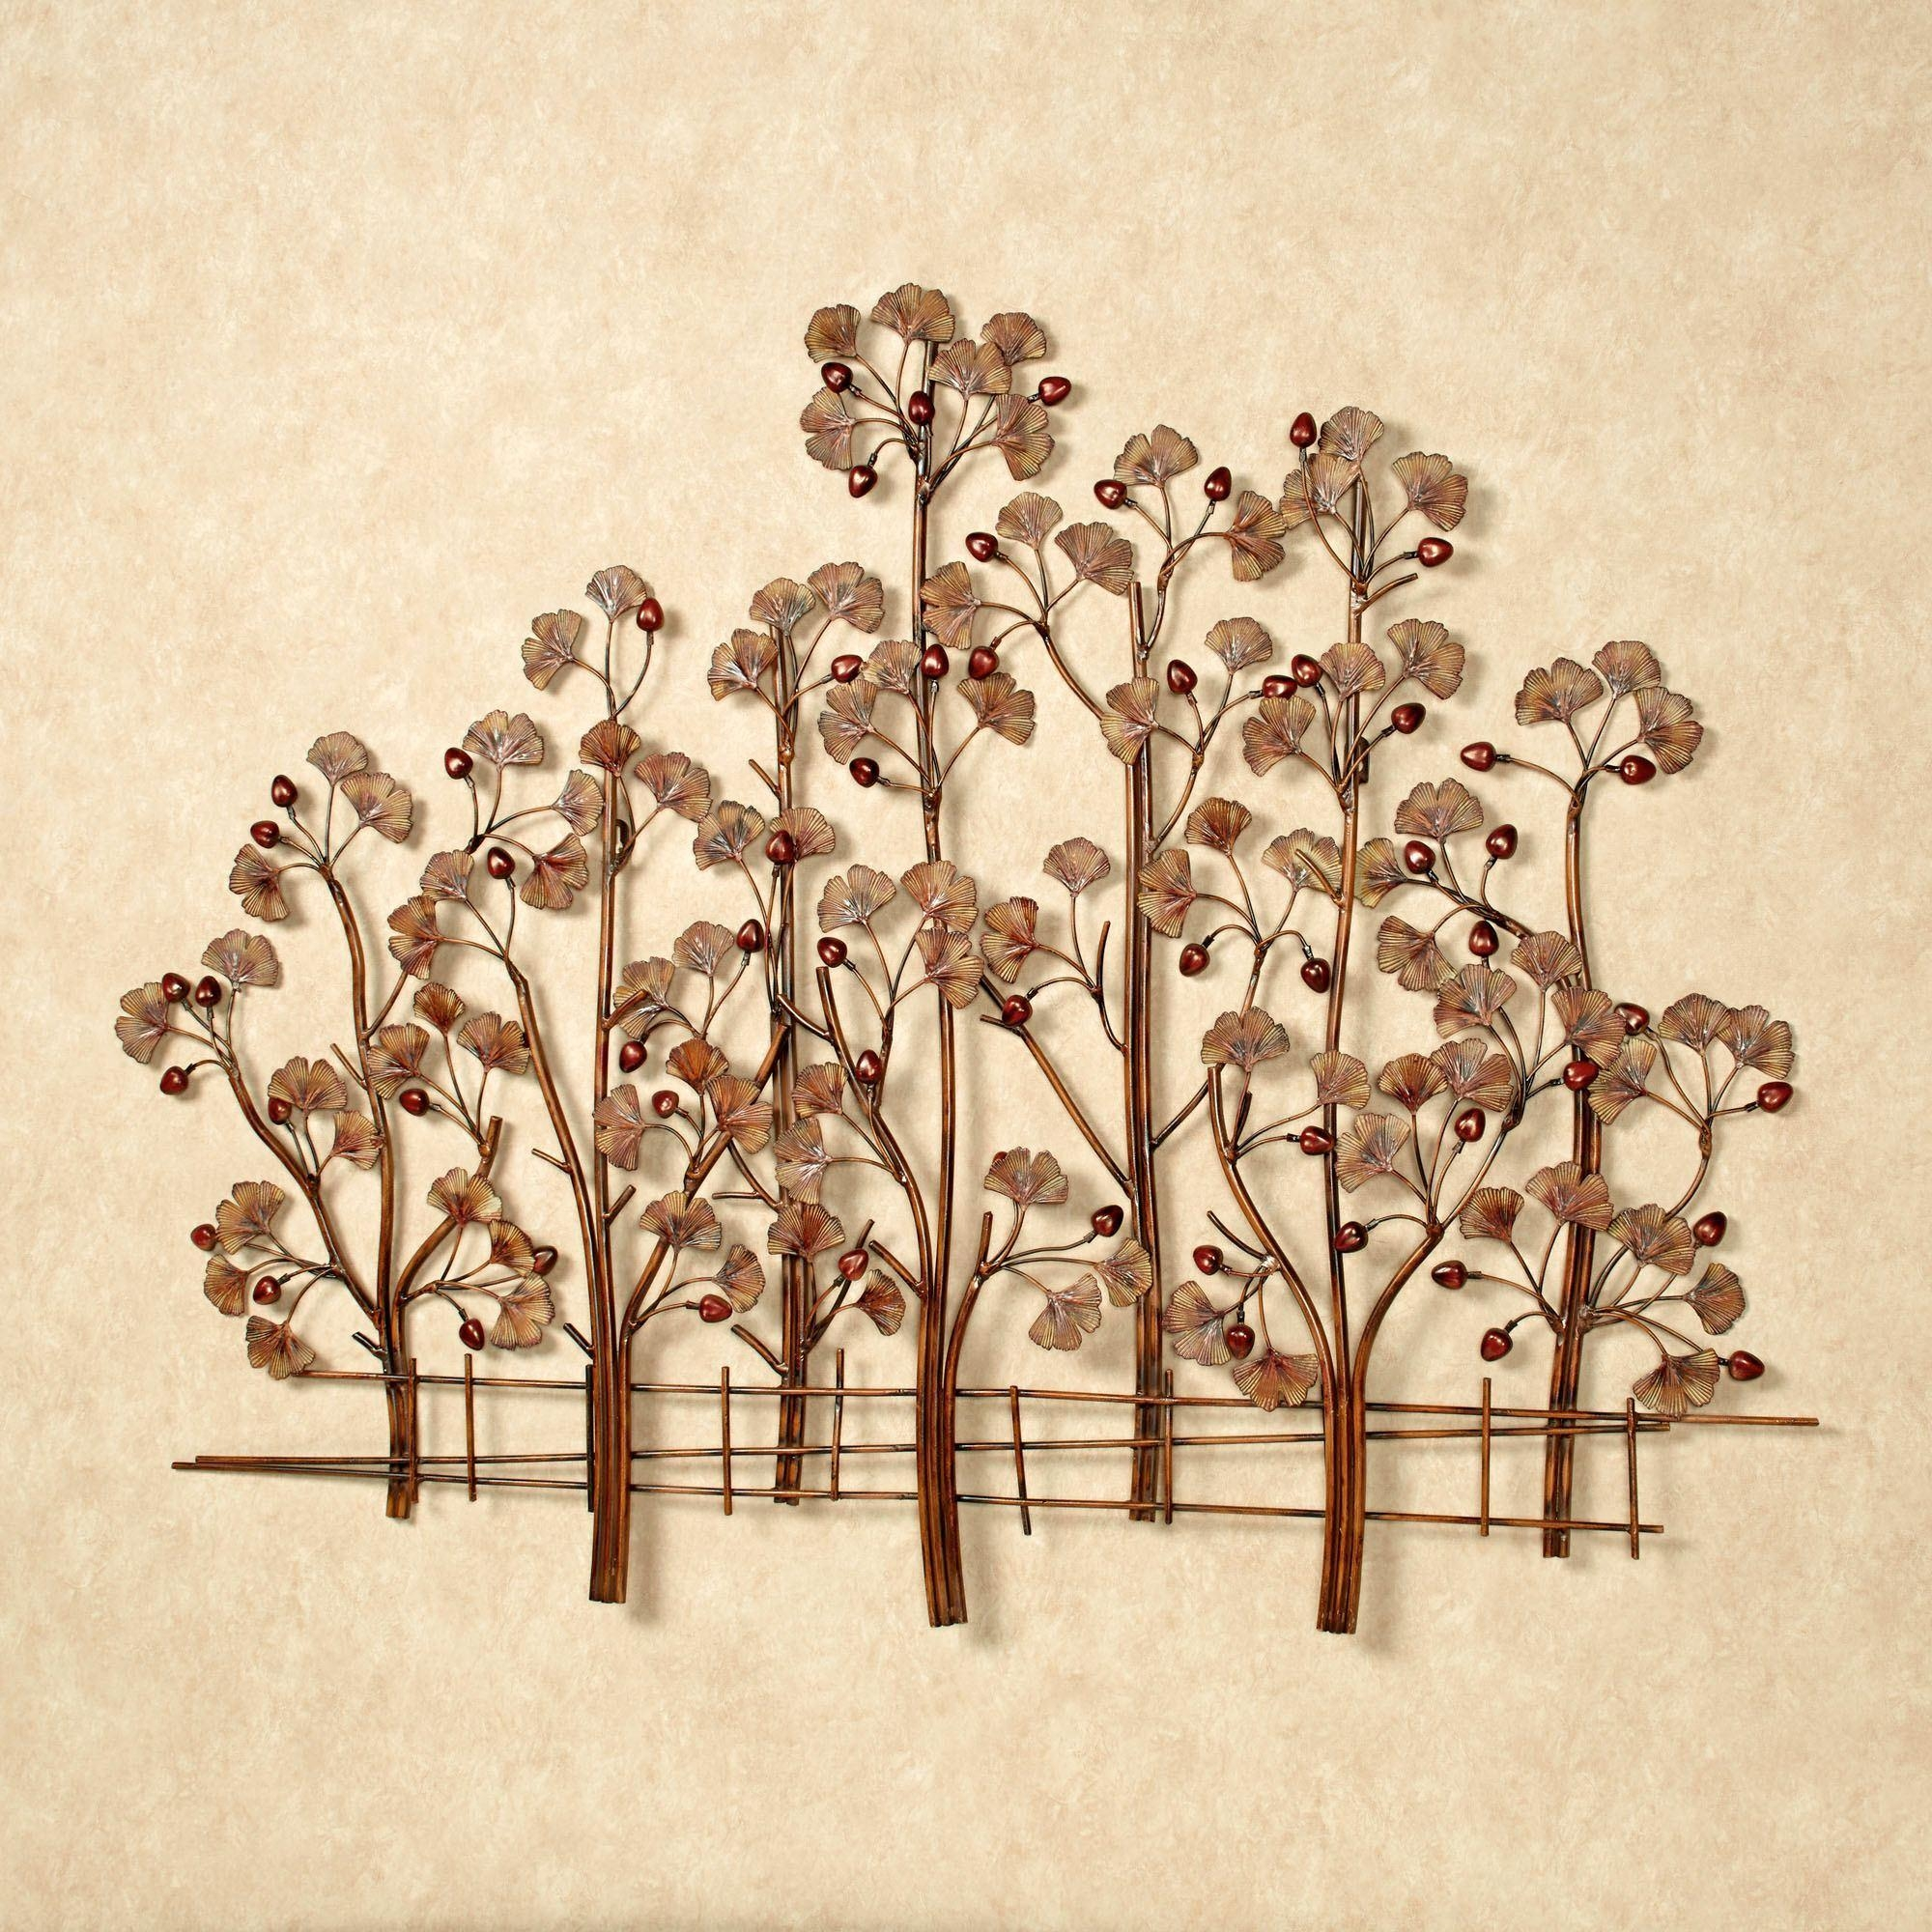 Ginkgo Tree Metal Wall Sculpture Intended For Tree Sculpture Wall Art (Image 6 of 20)